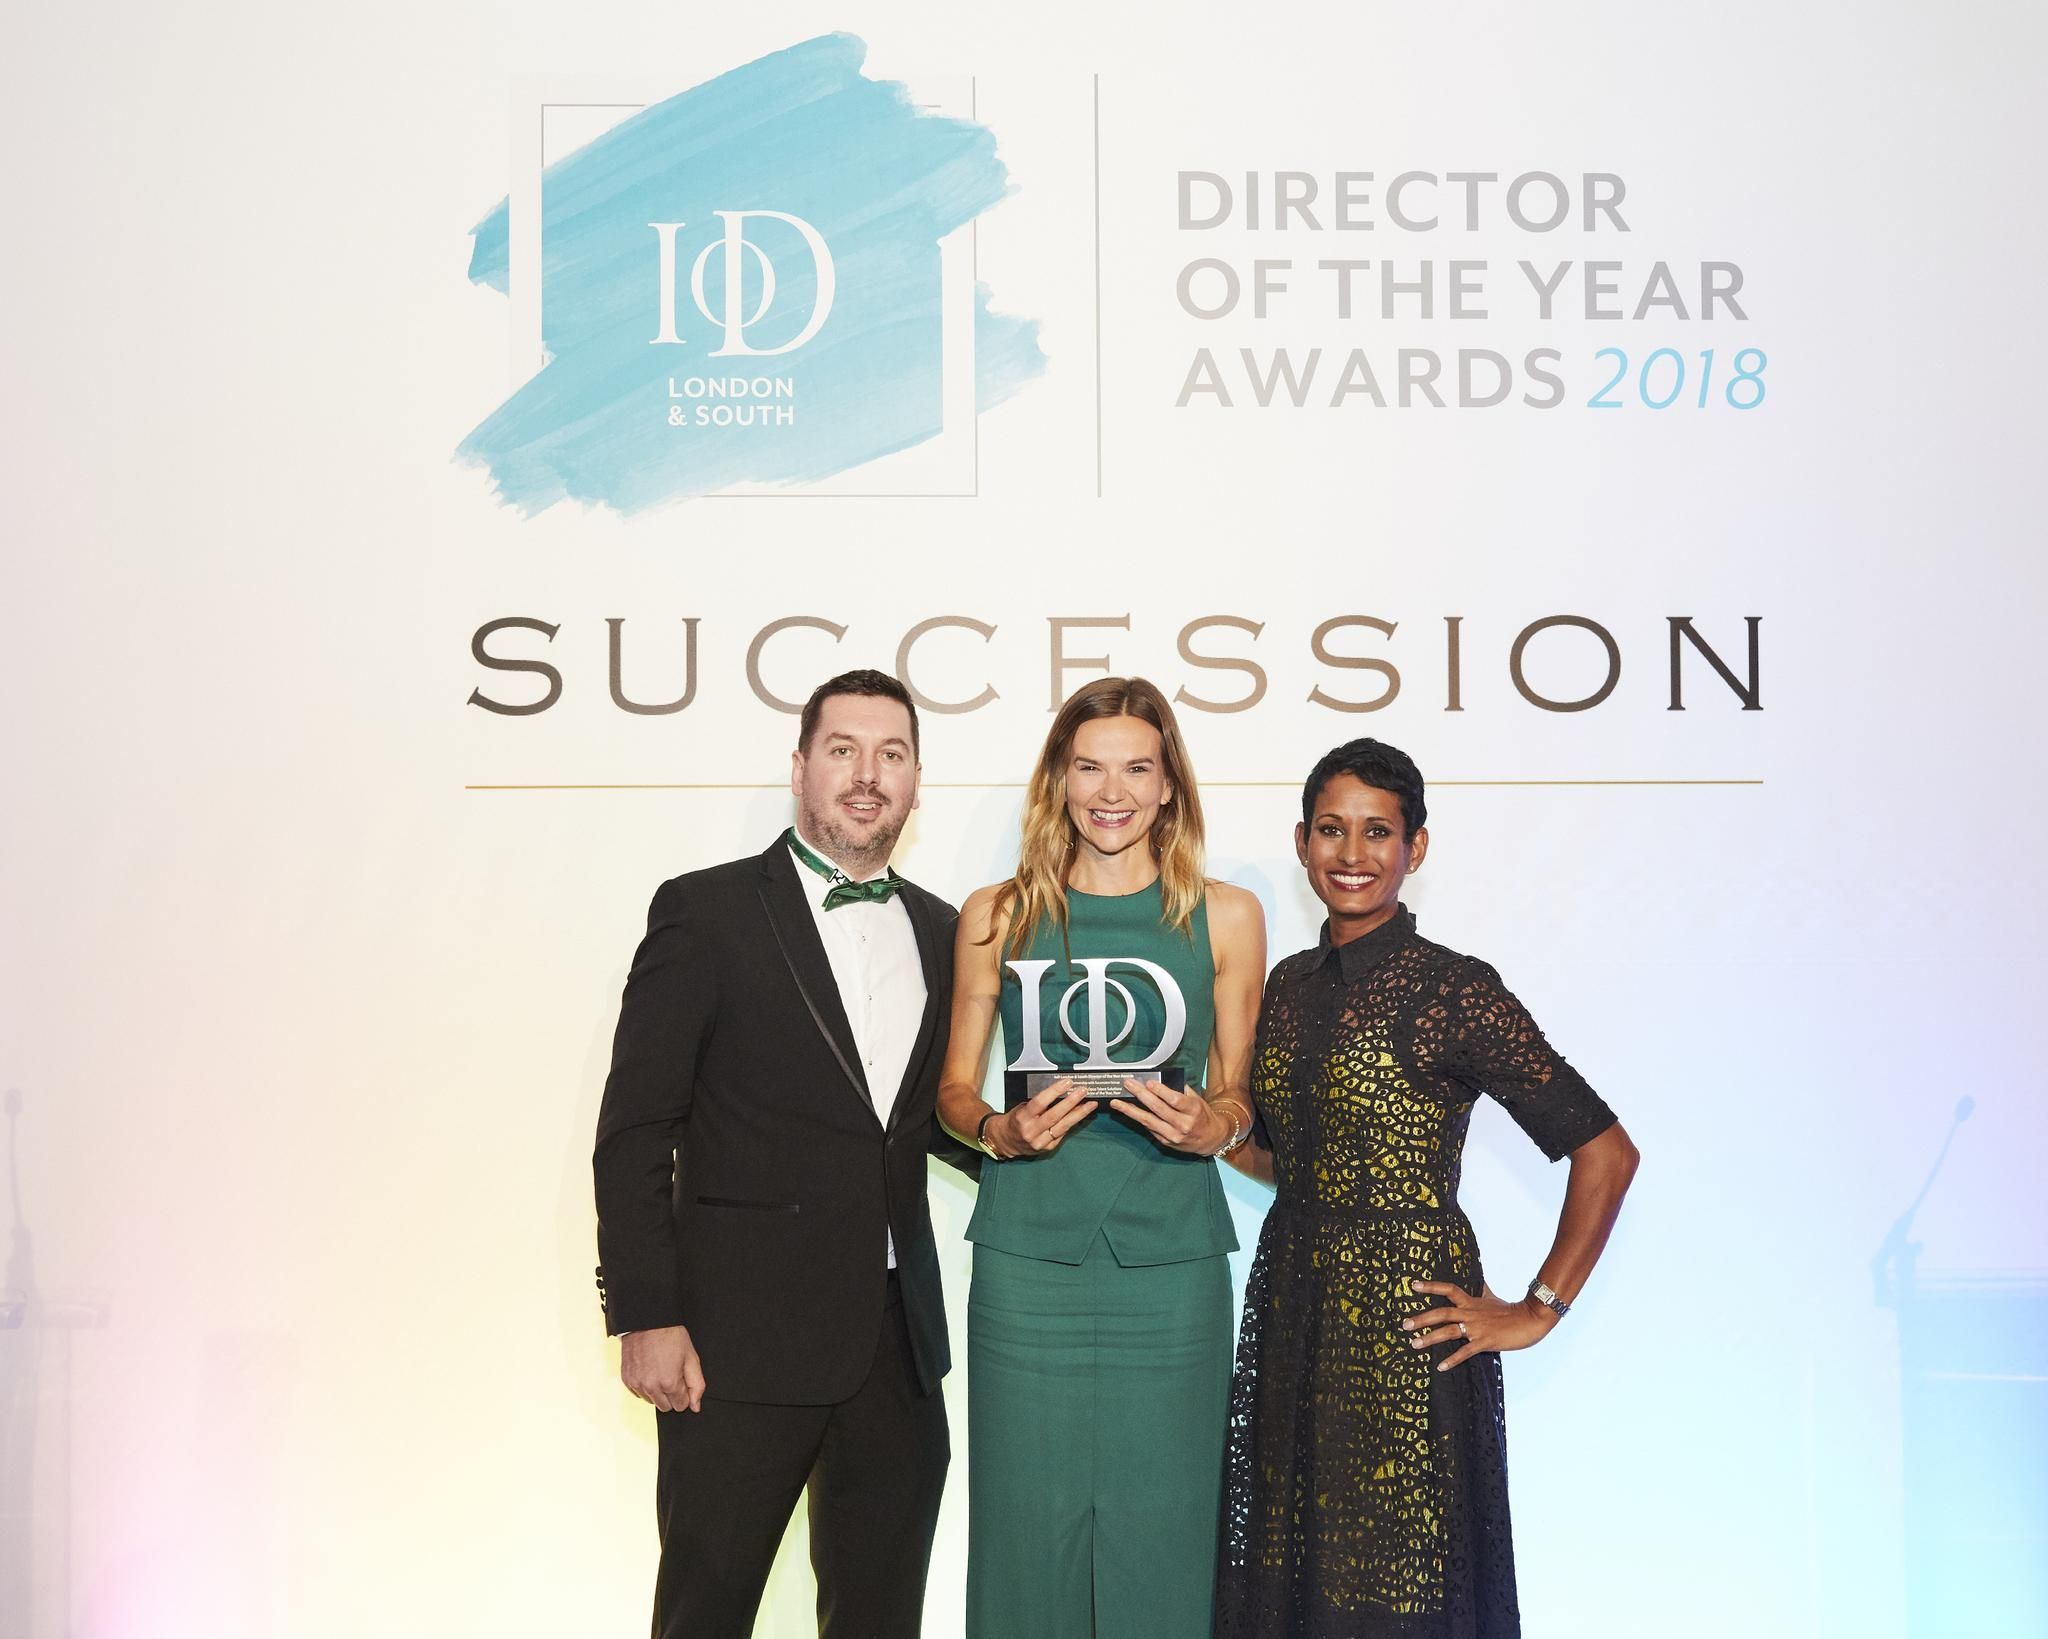 London & South Director of the Year Awards 2018